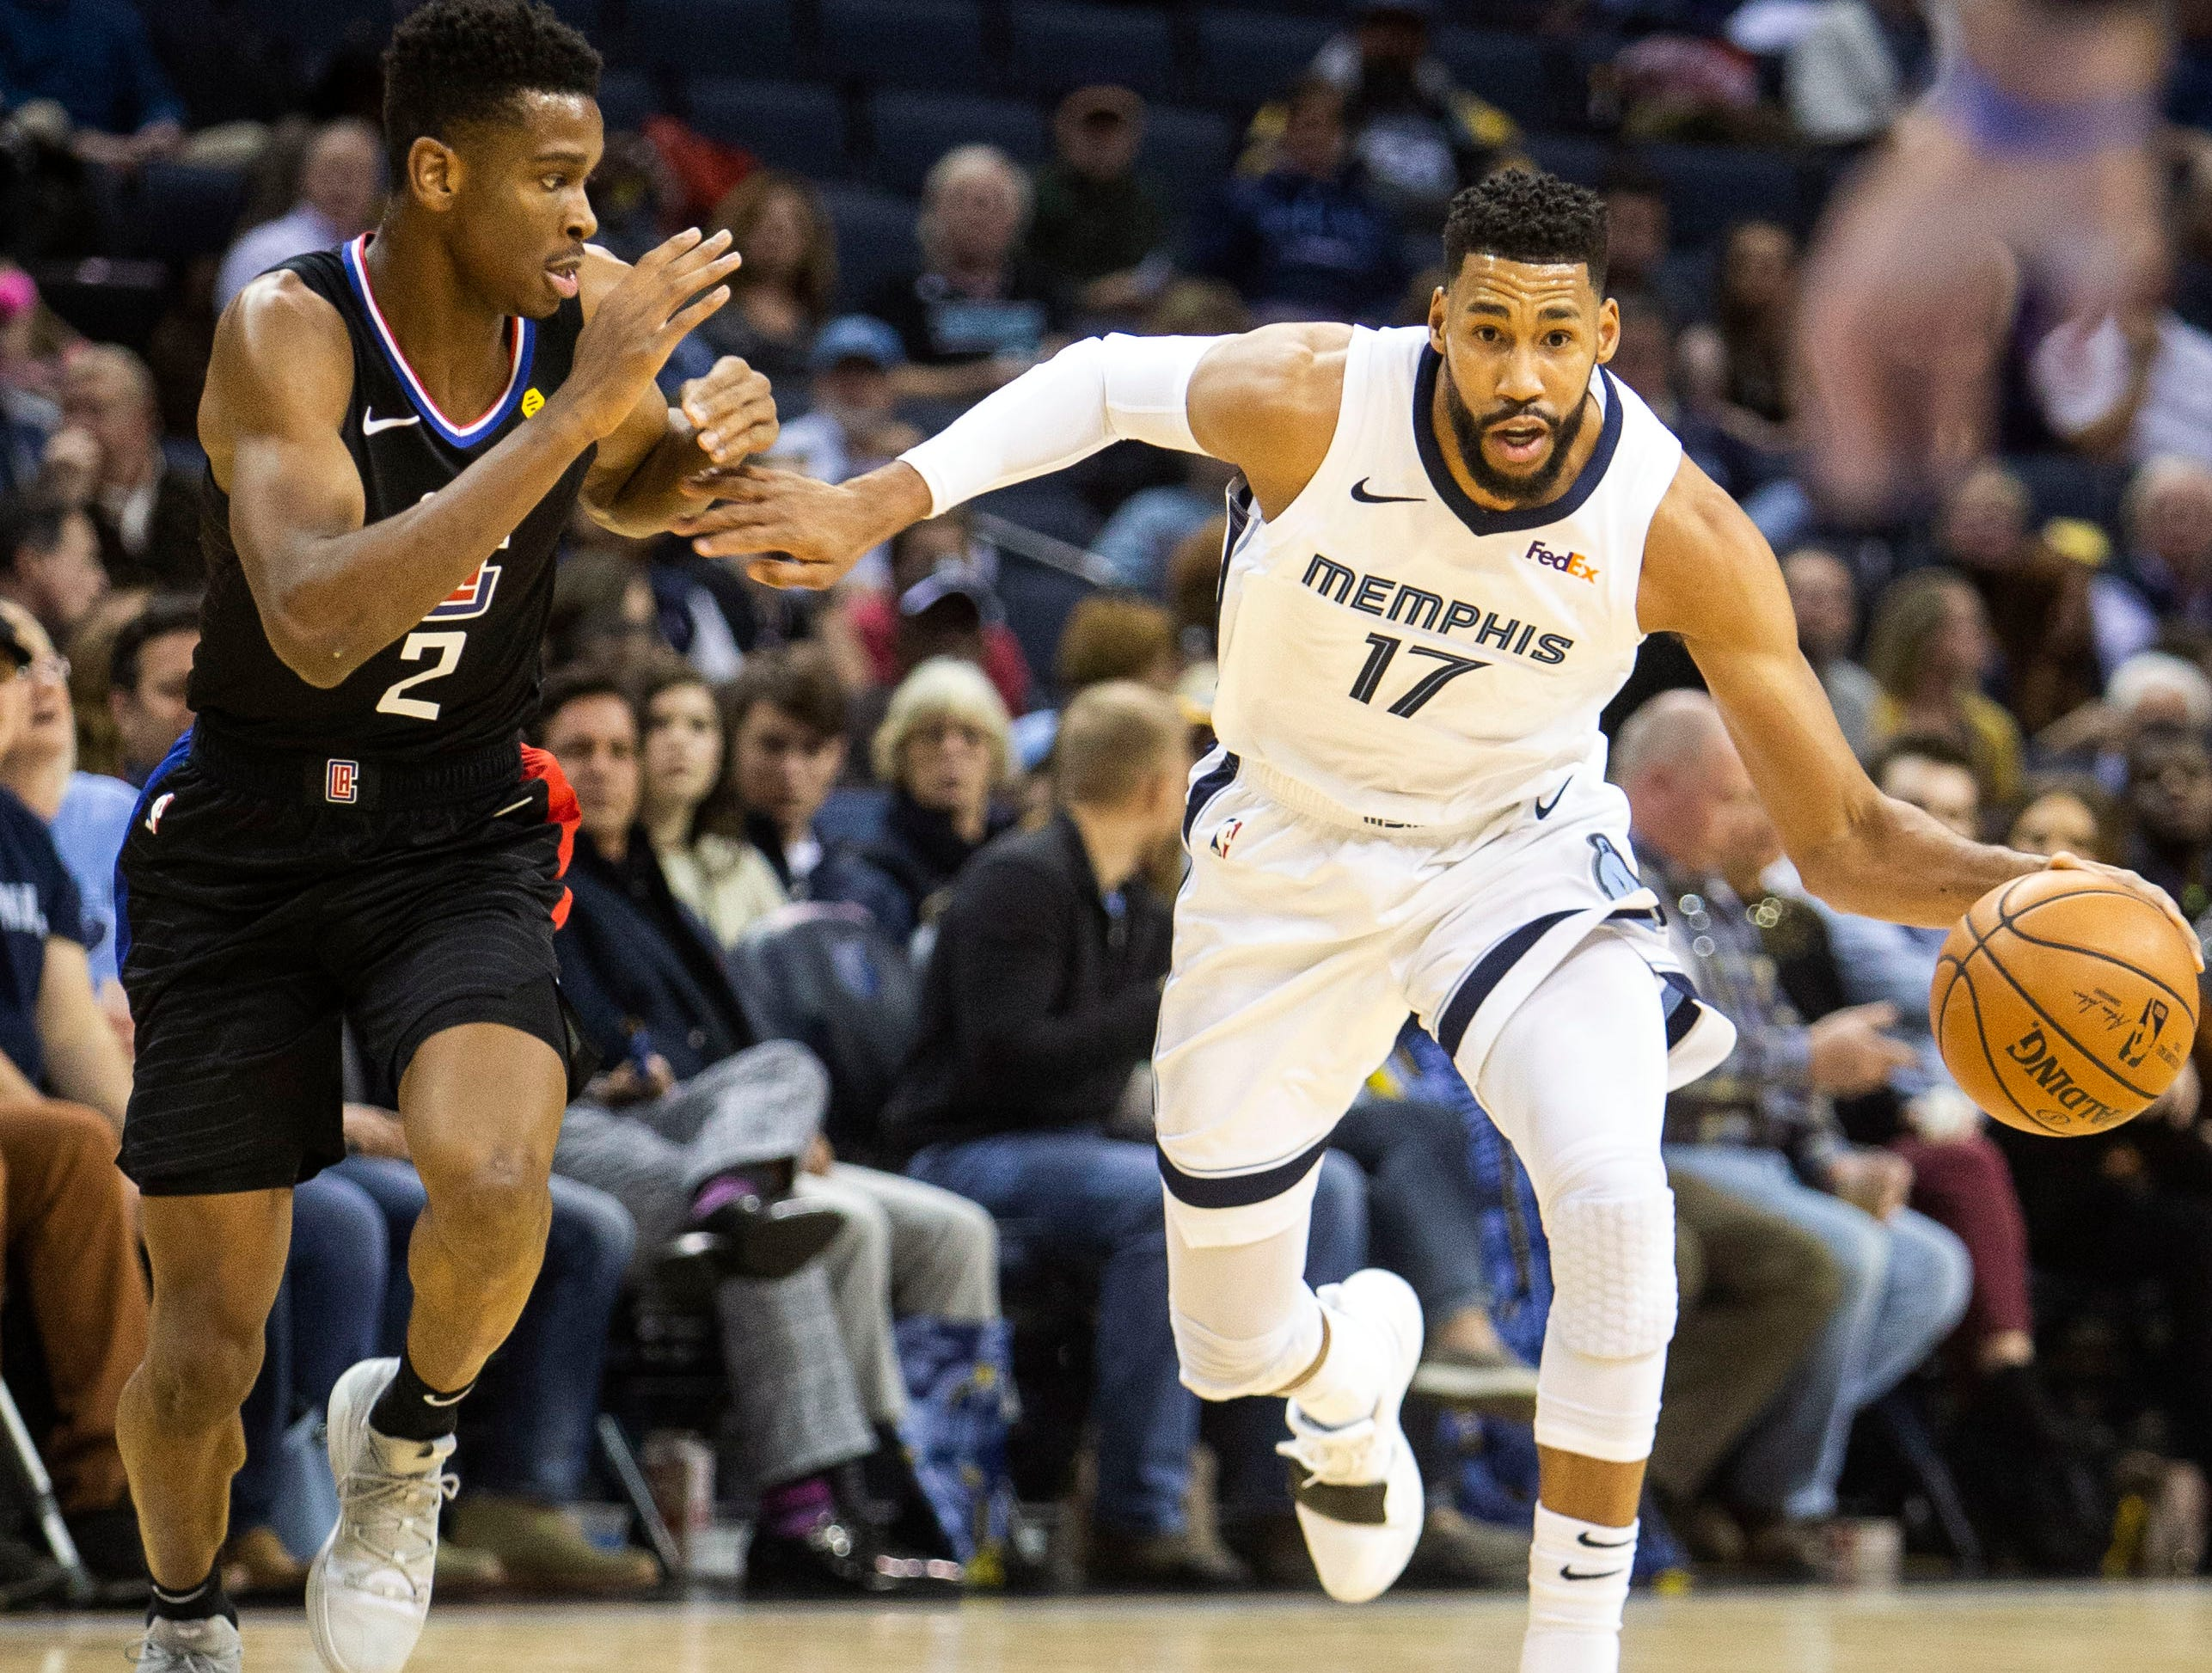 Memphis Grizzles guard Garrett Temple (17) drives to the hoop during a NBA basketball game between the Memphis Grizzlies and the Los Angeles Clippers in the Fedex Forum, Wednesday, Dec. 5, 2018.